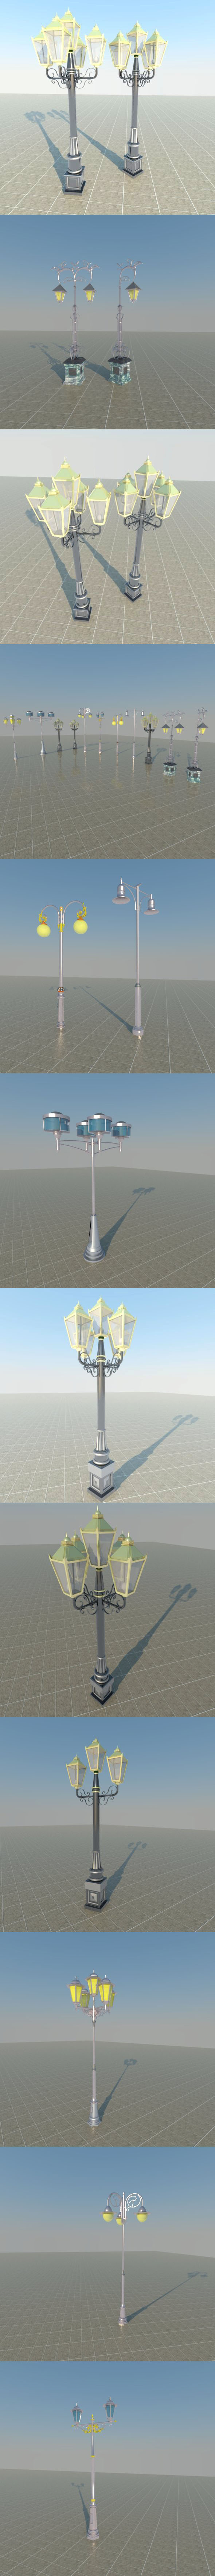 lampposts street lamp COLLECTION - 3DOcean Item for Sale